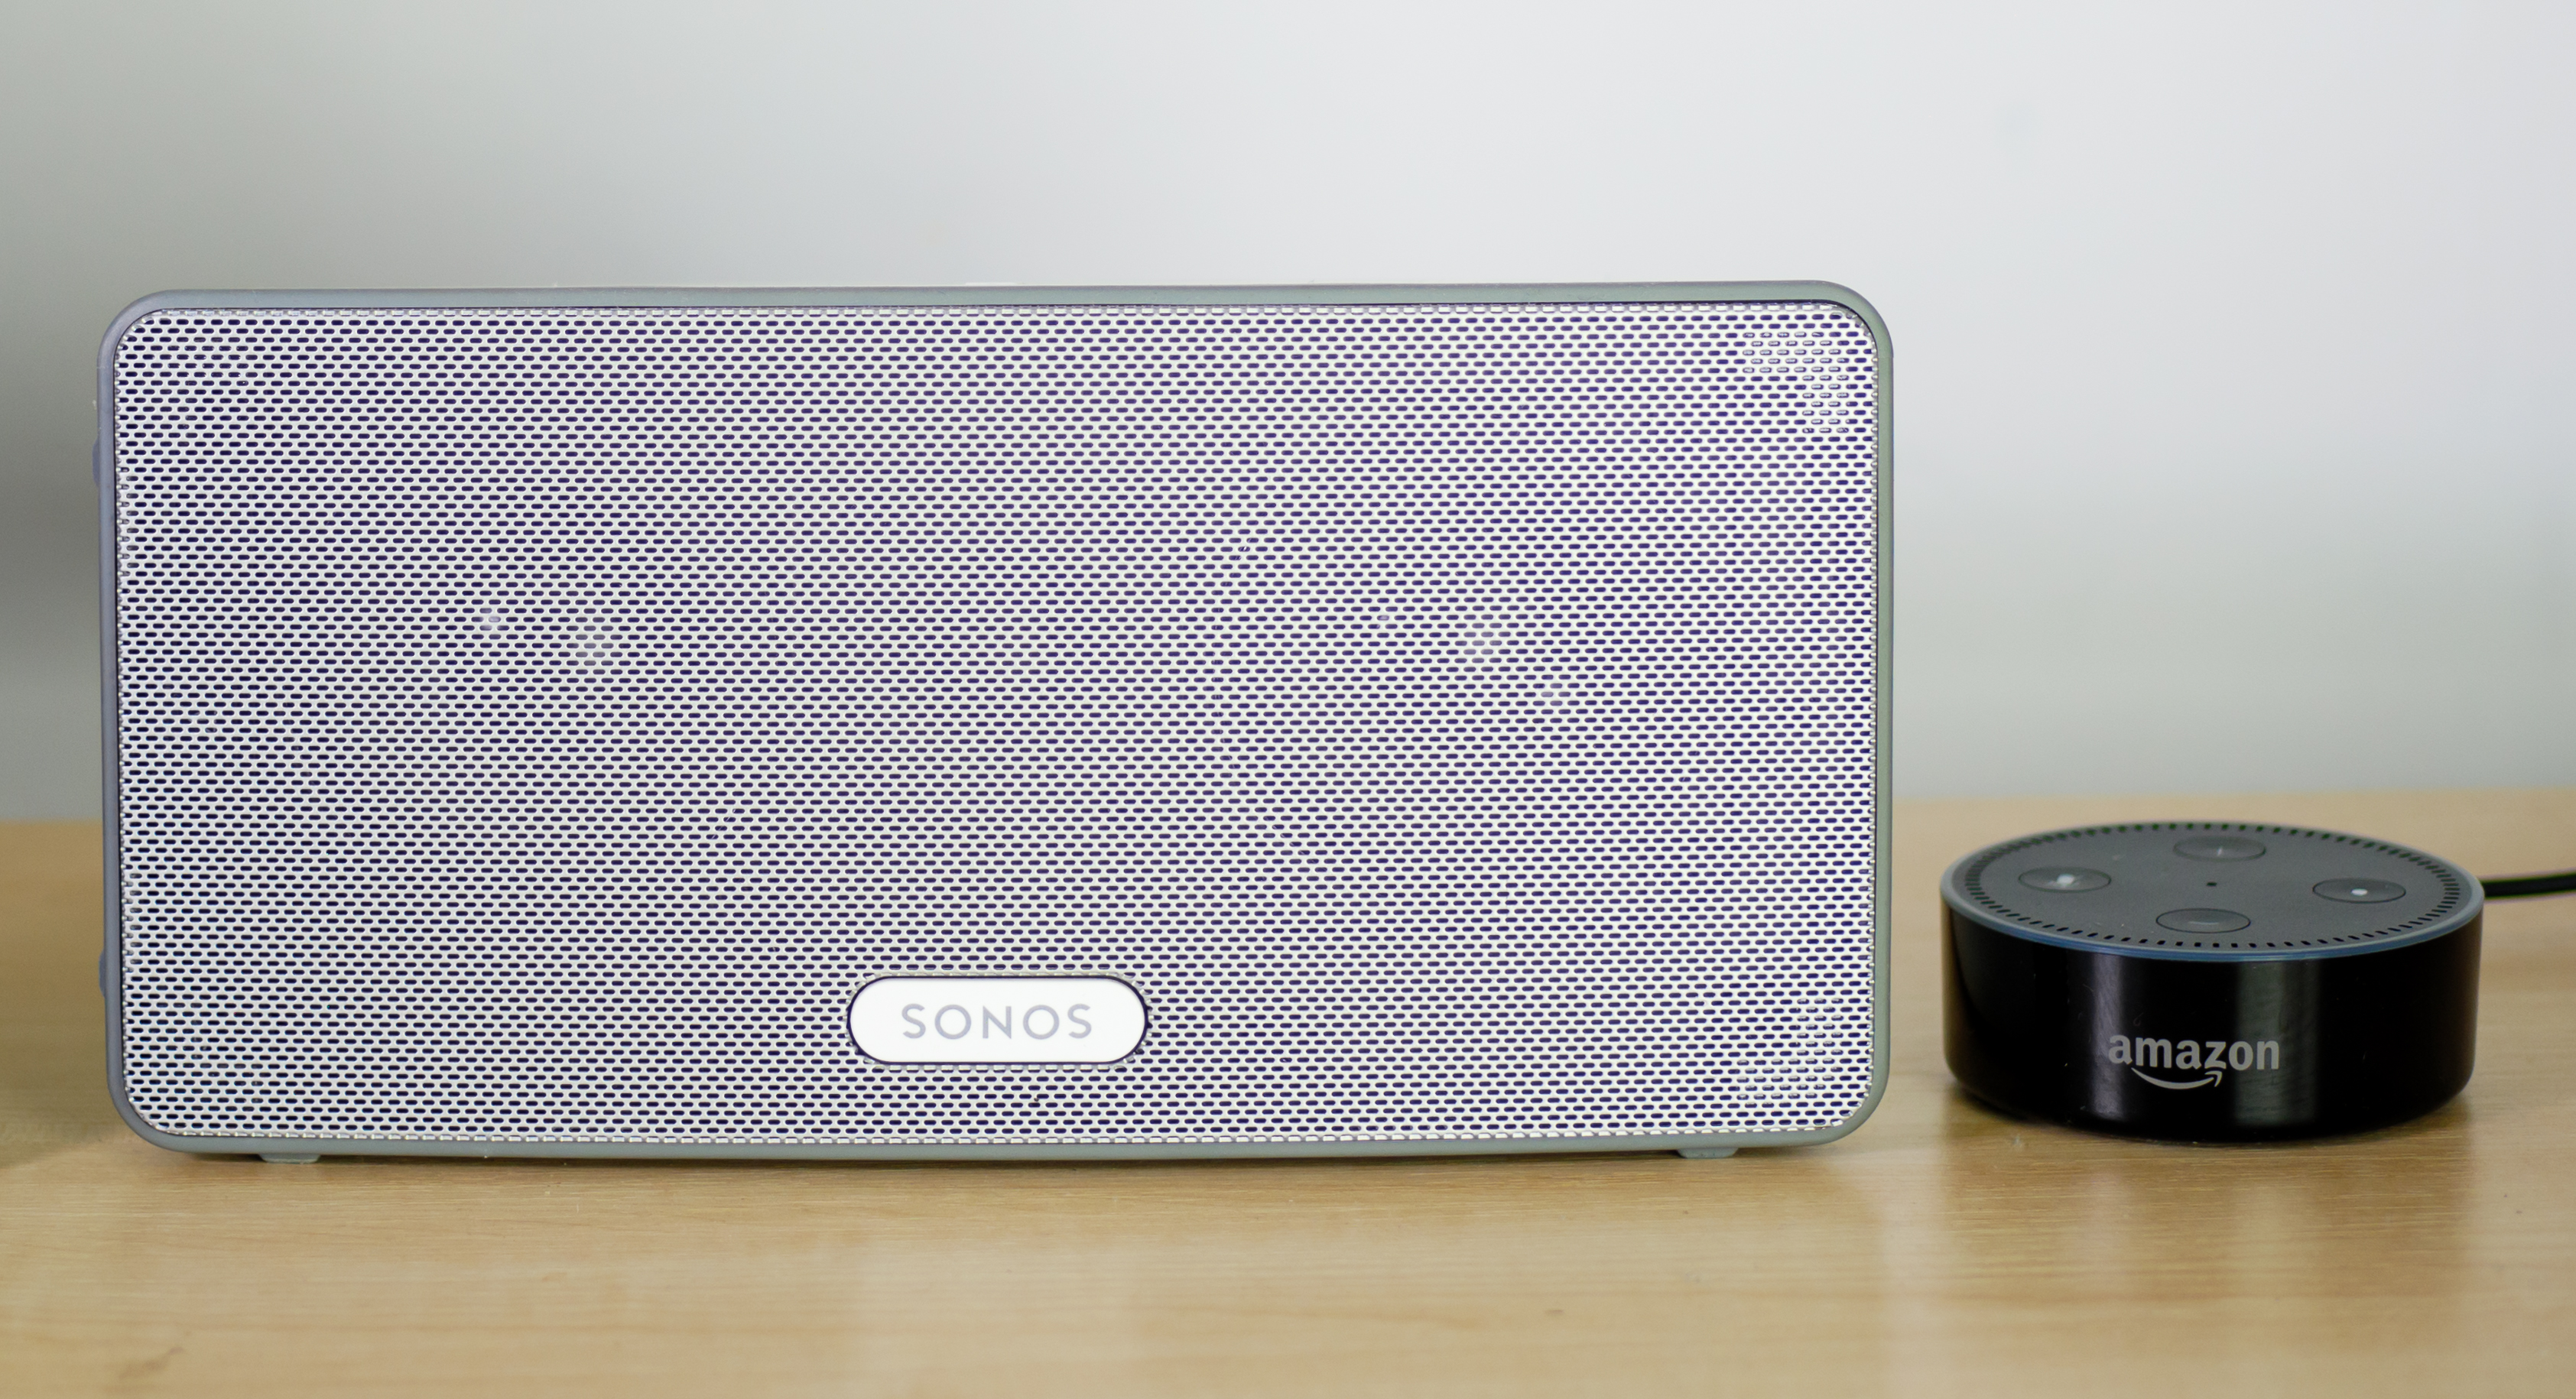 how to connect amazon echo speaker to sonos system